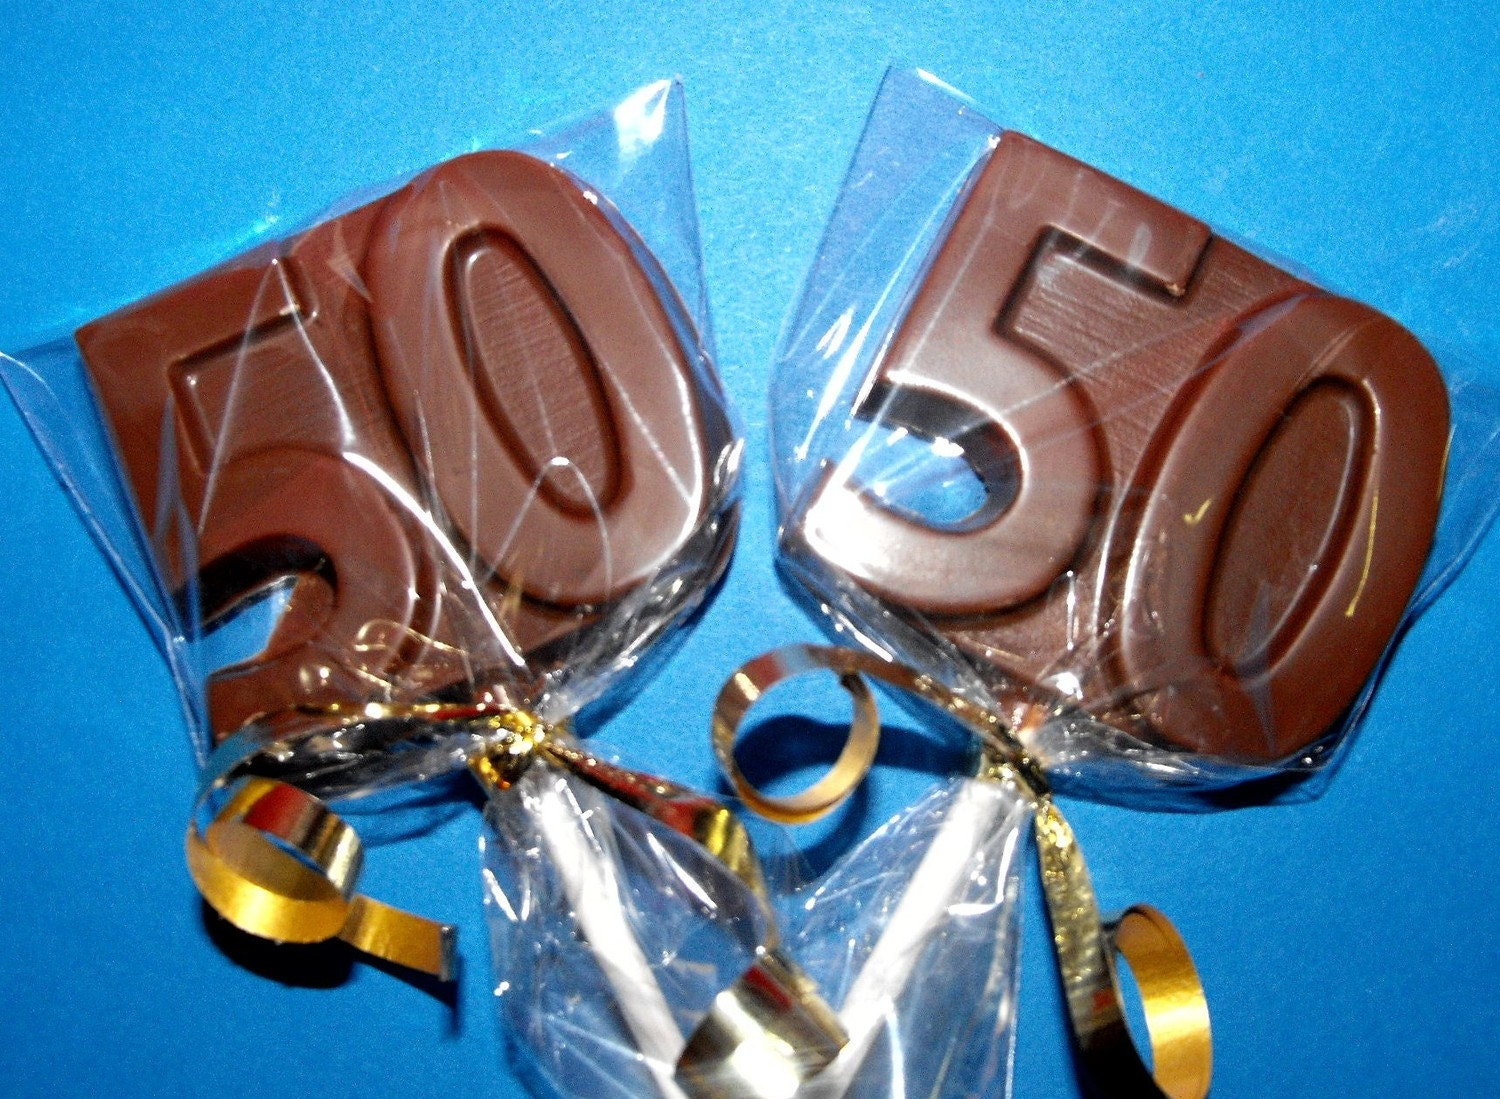 2 dozen 50th birthday anniversary chocolate by candycrafts